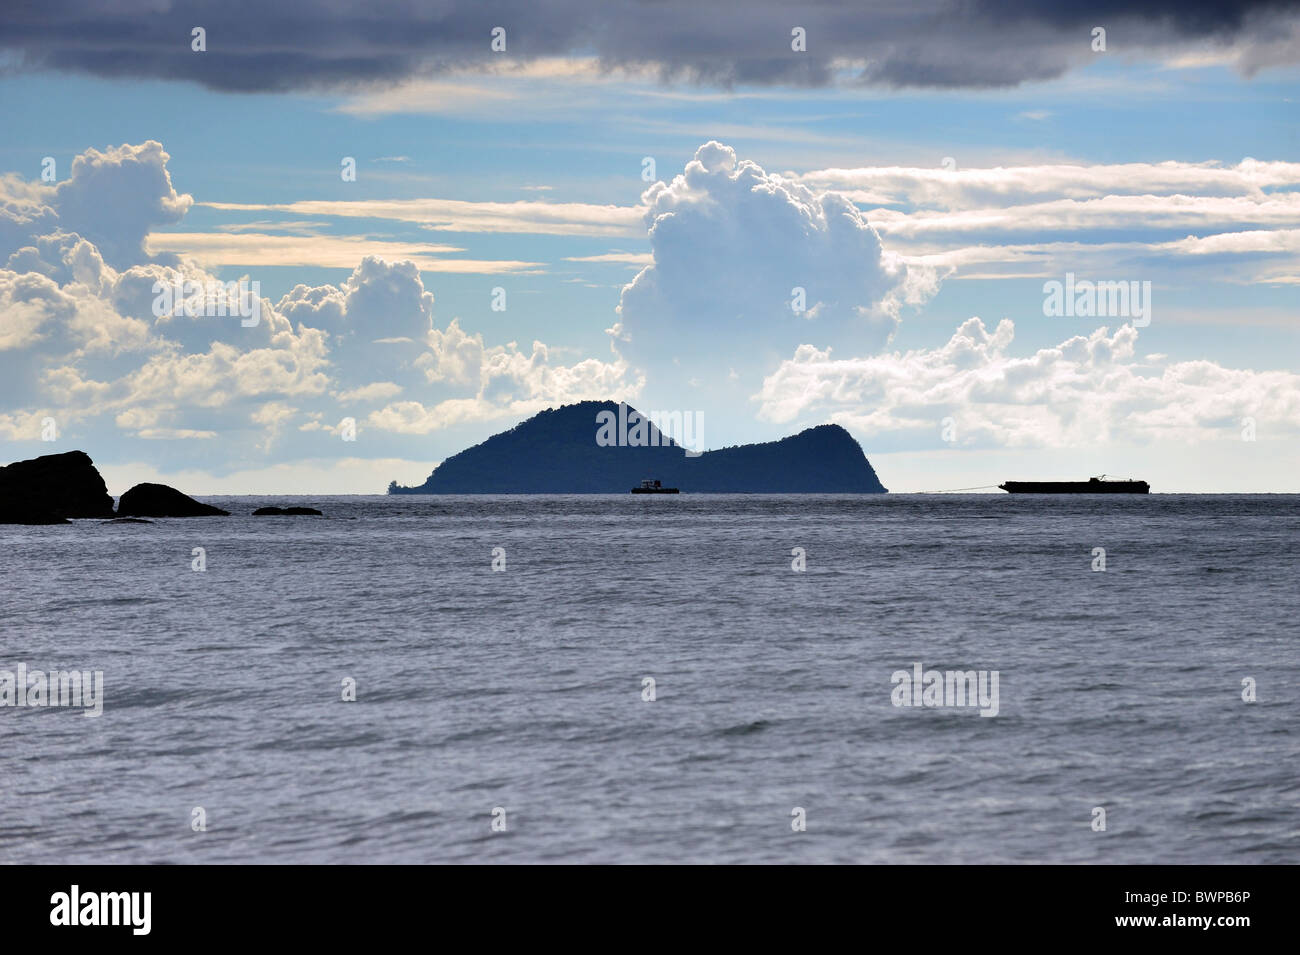 Satang Island with shipping passing by on the South China Sea, Sarawak, Malaysia, Asia - Stock Image